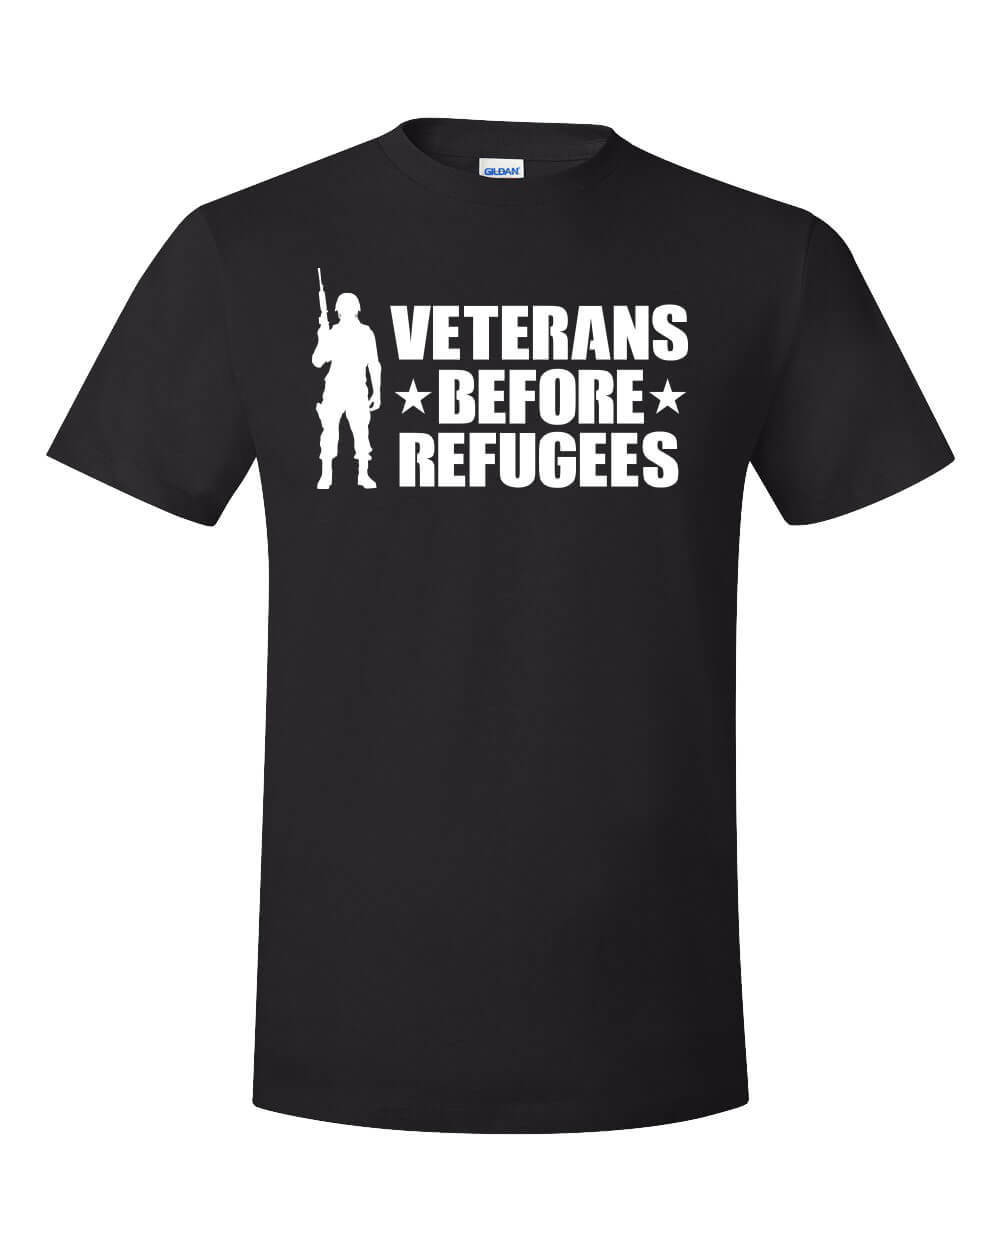 2018 Fashion Summer Style Veterans Before Refugees T Shirt Trump Military Support Travel Ban Meme Usa Maga Tee Shirt image